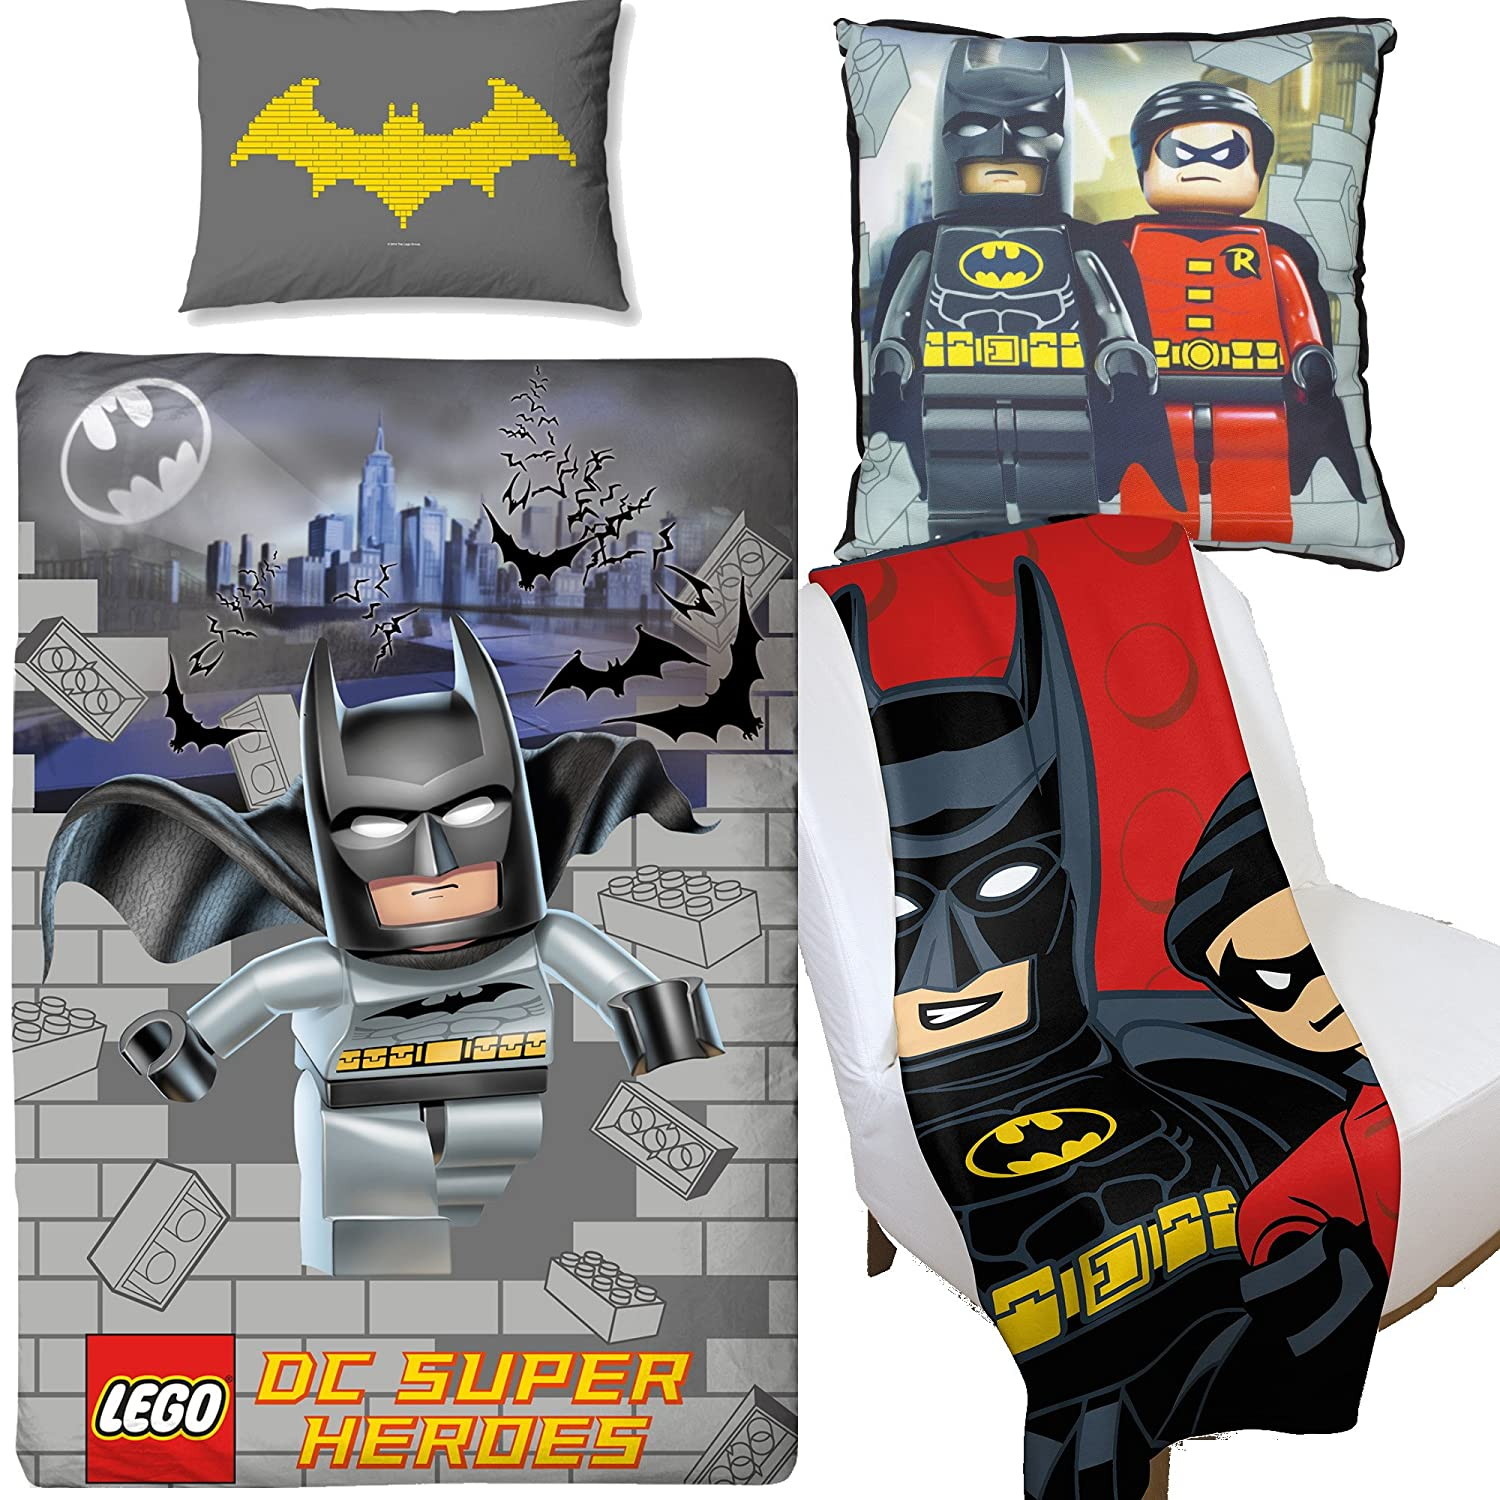 Lego Batman Kapow Duvet Cover & Canvas Cushion & Fleece Blanket Bedroom Set Kidco